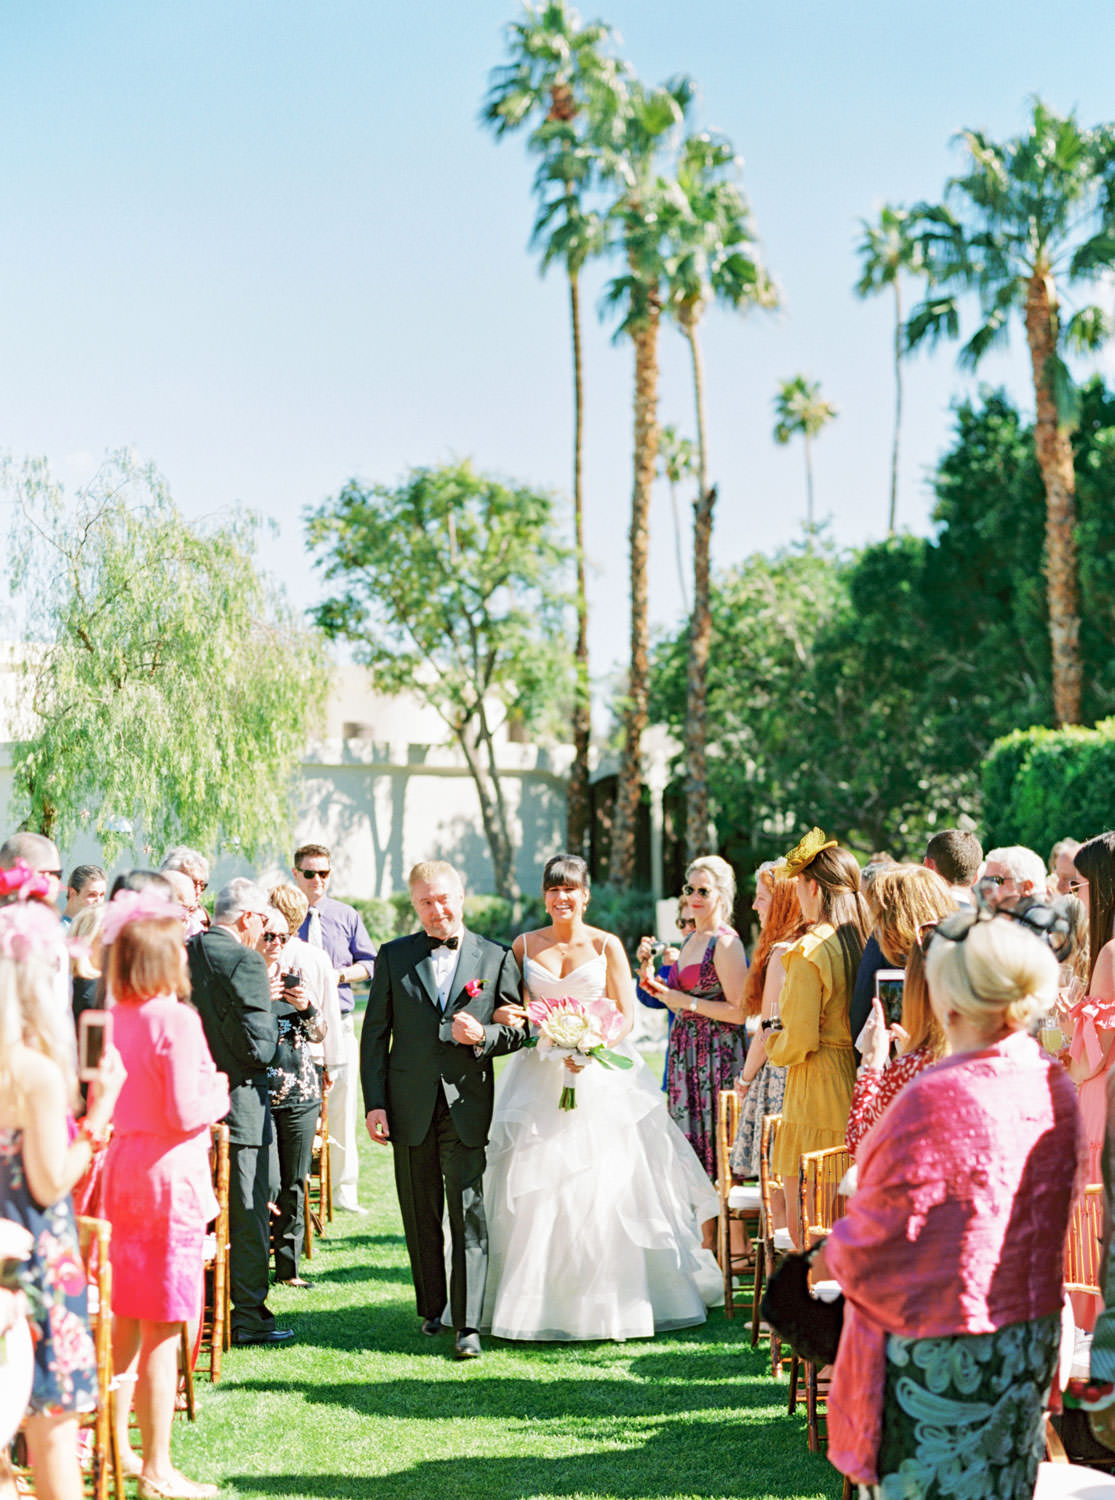 Bride in a Matthew Christopher gown walking down the aisle with her uncle. Riviera Palm Springs Wedding by Cavin Elizabeth Photography